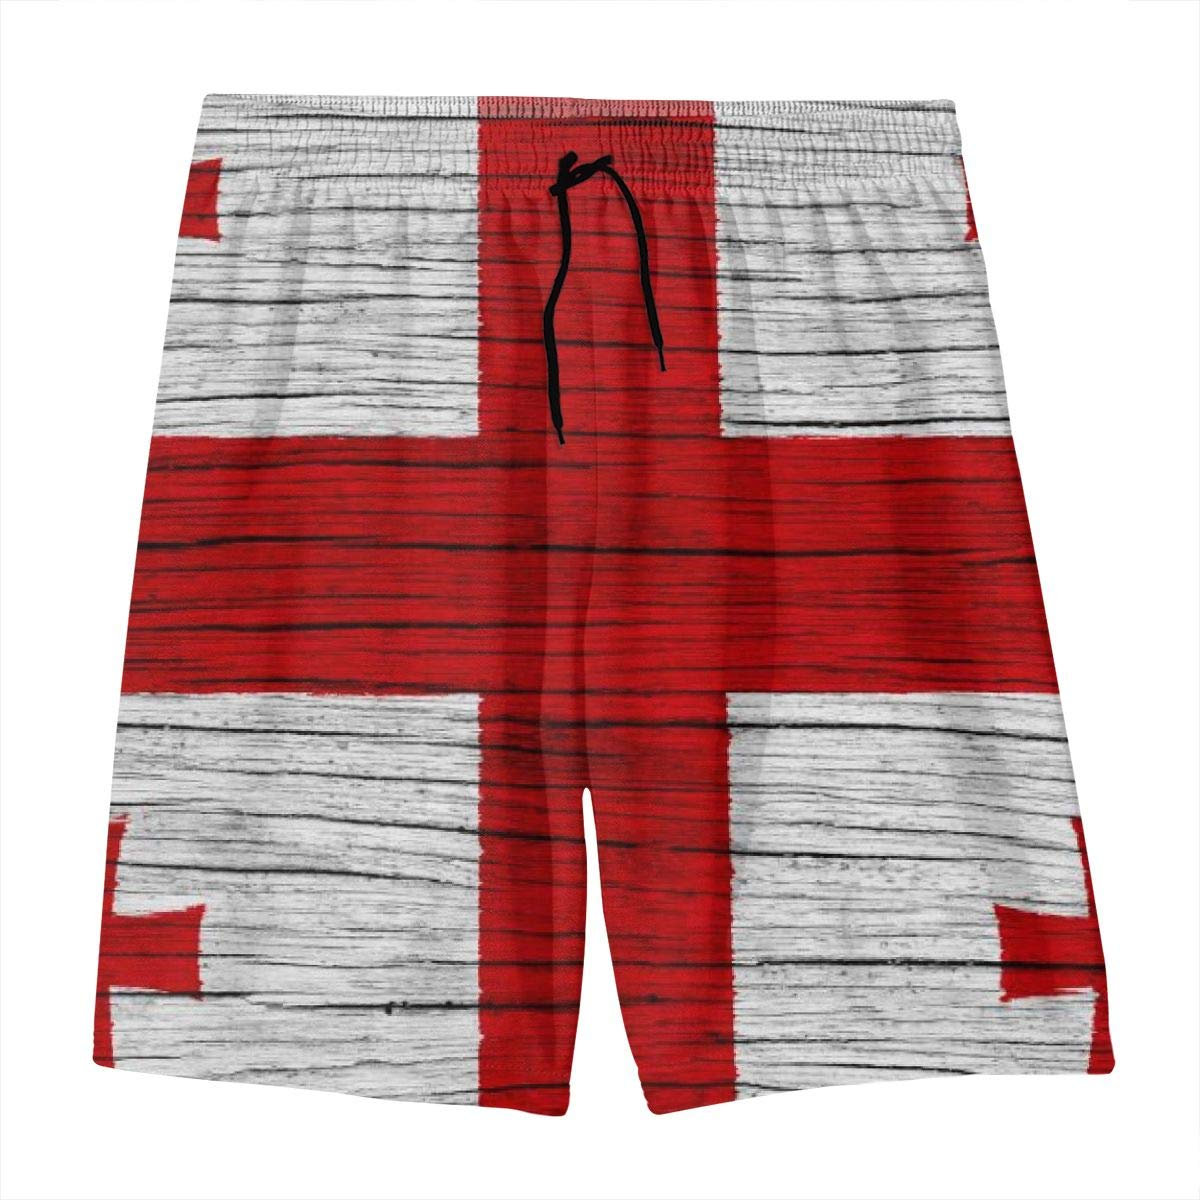 Mens Pants Armenian Flag Summer Swimming Trunks with Pockets Sport Trouser Quick Dry Water Sport Beach Shorts